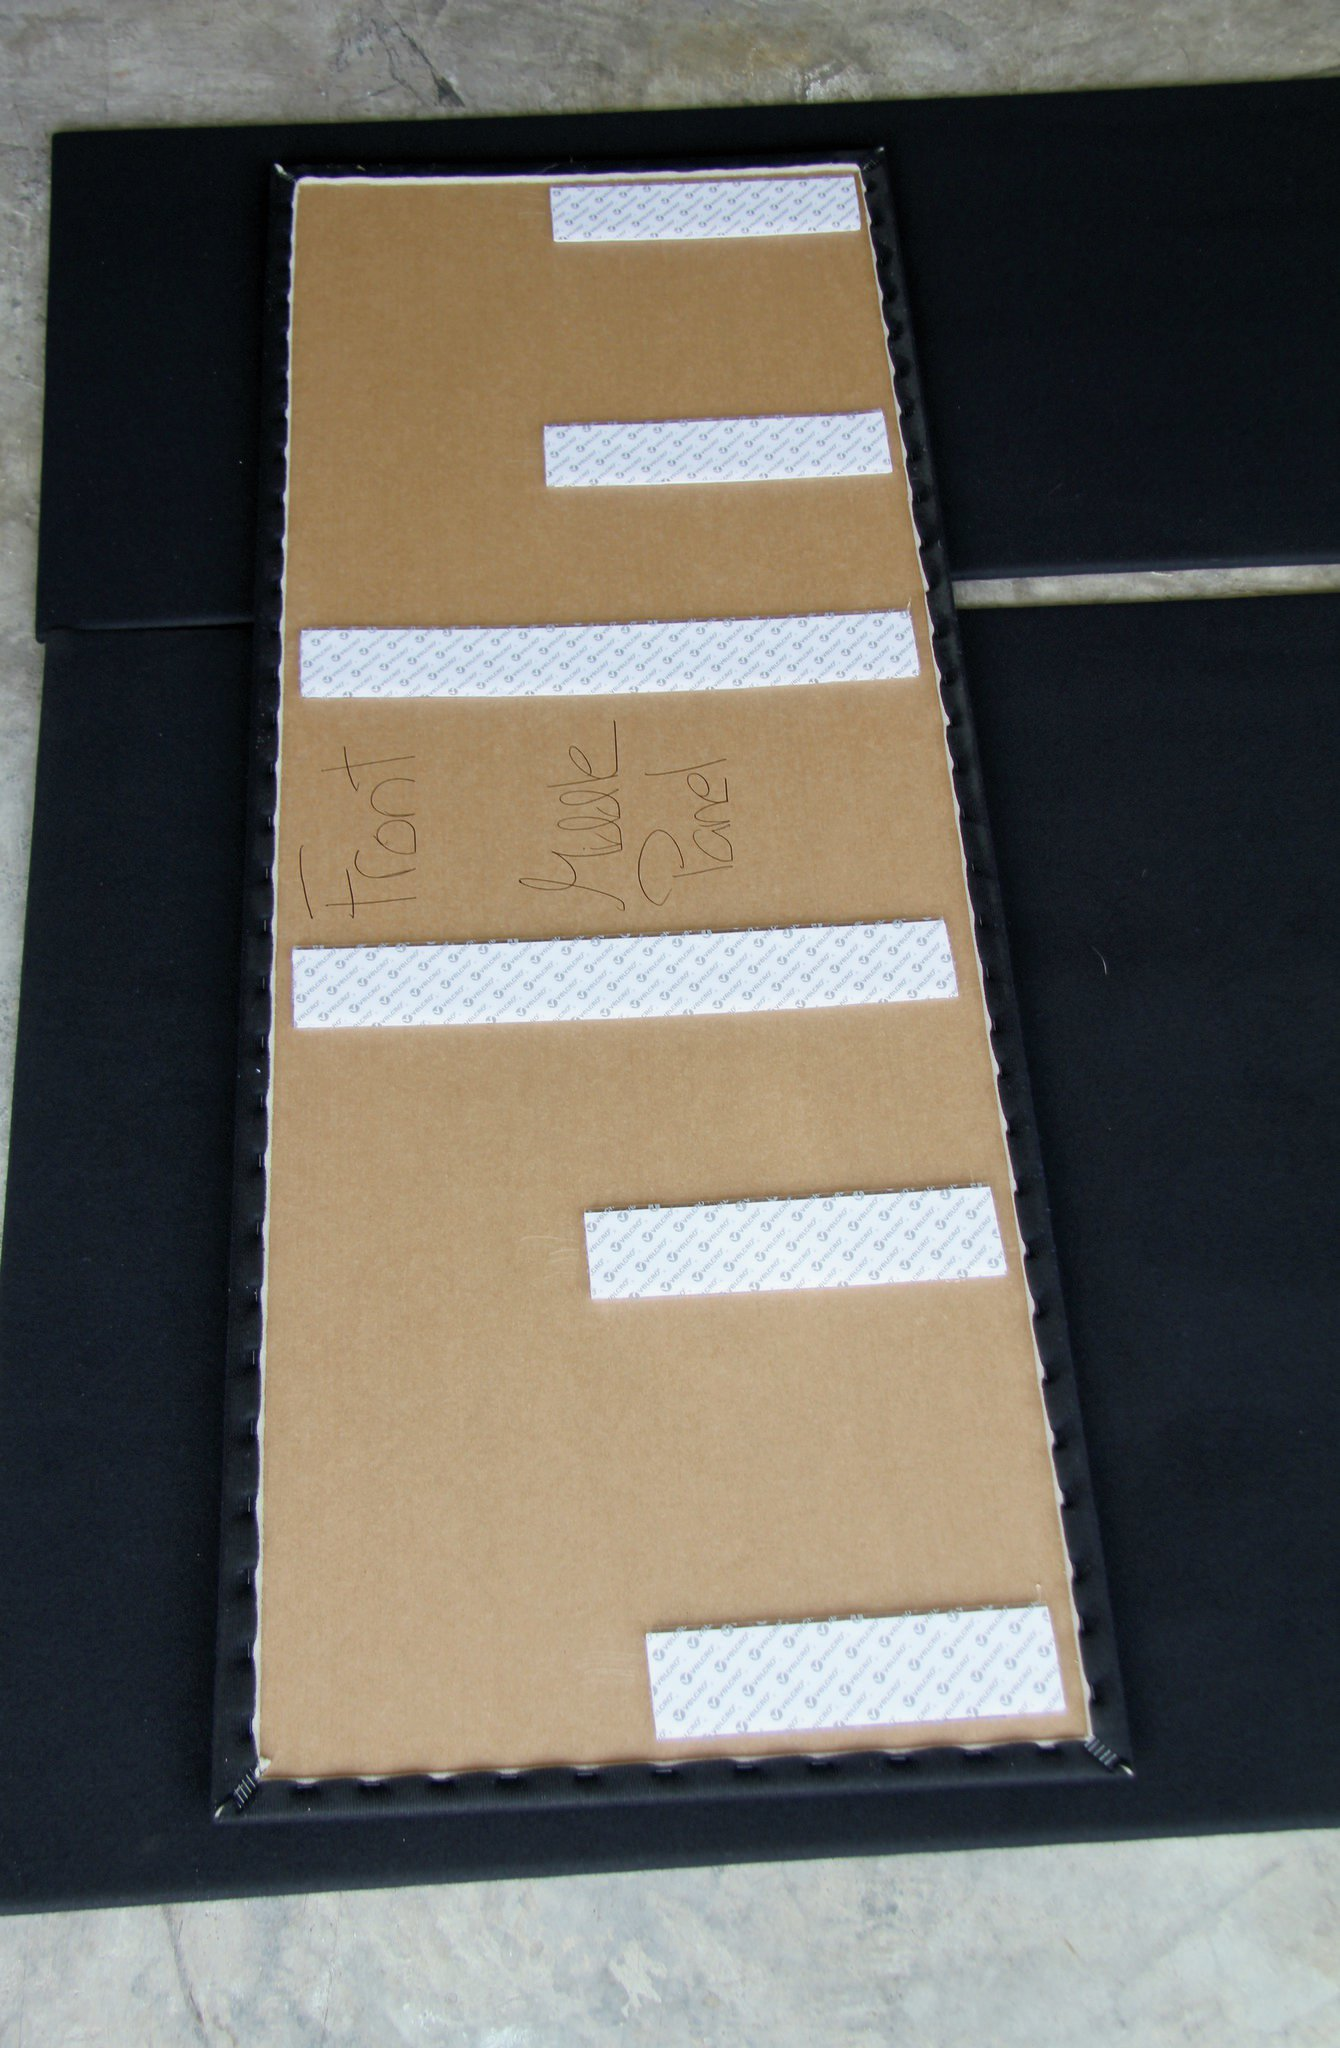 Each panel is clearly marked and fit with Velcro-brand strips with adhesive backing. Using staples to secure the fabric cover over the foam and particleboard base, the panels were extremely light but not flimsy in the least.